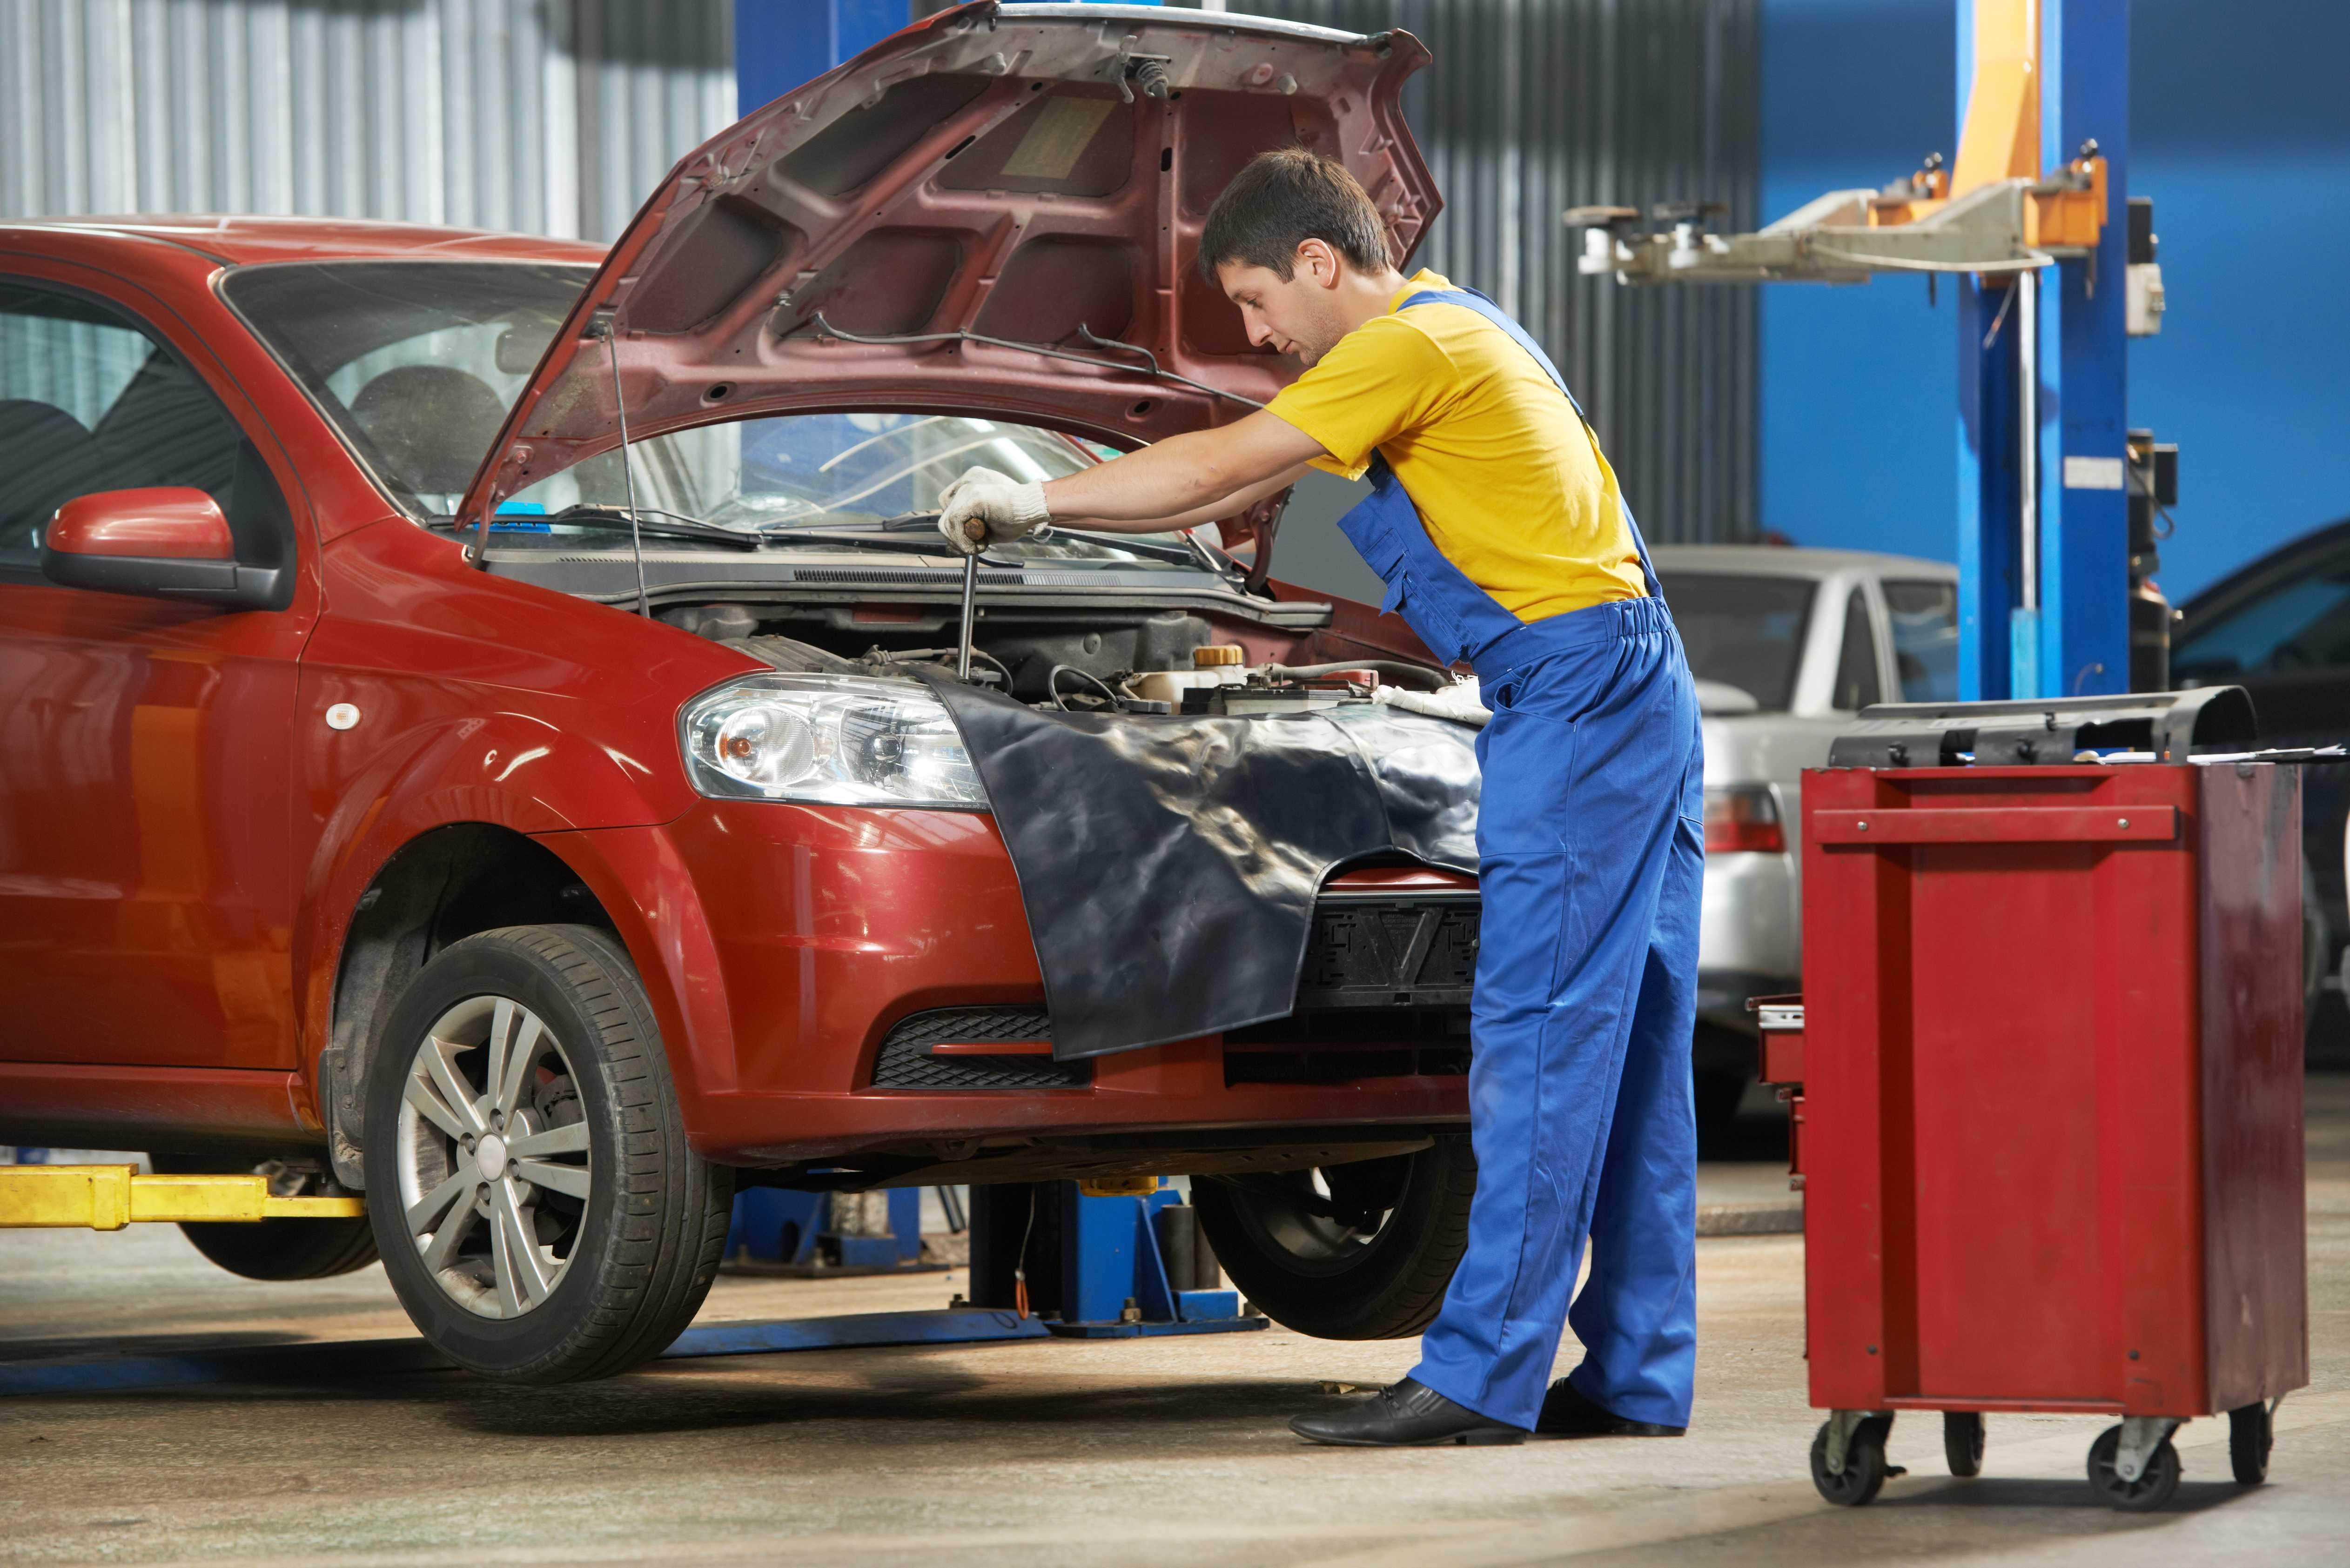 4 Practical Ways to Save Money on Car Repairs